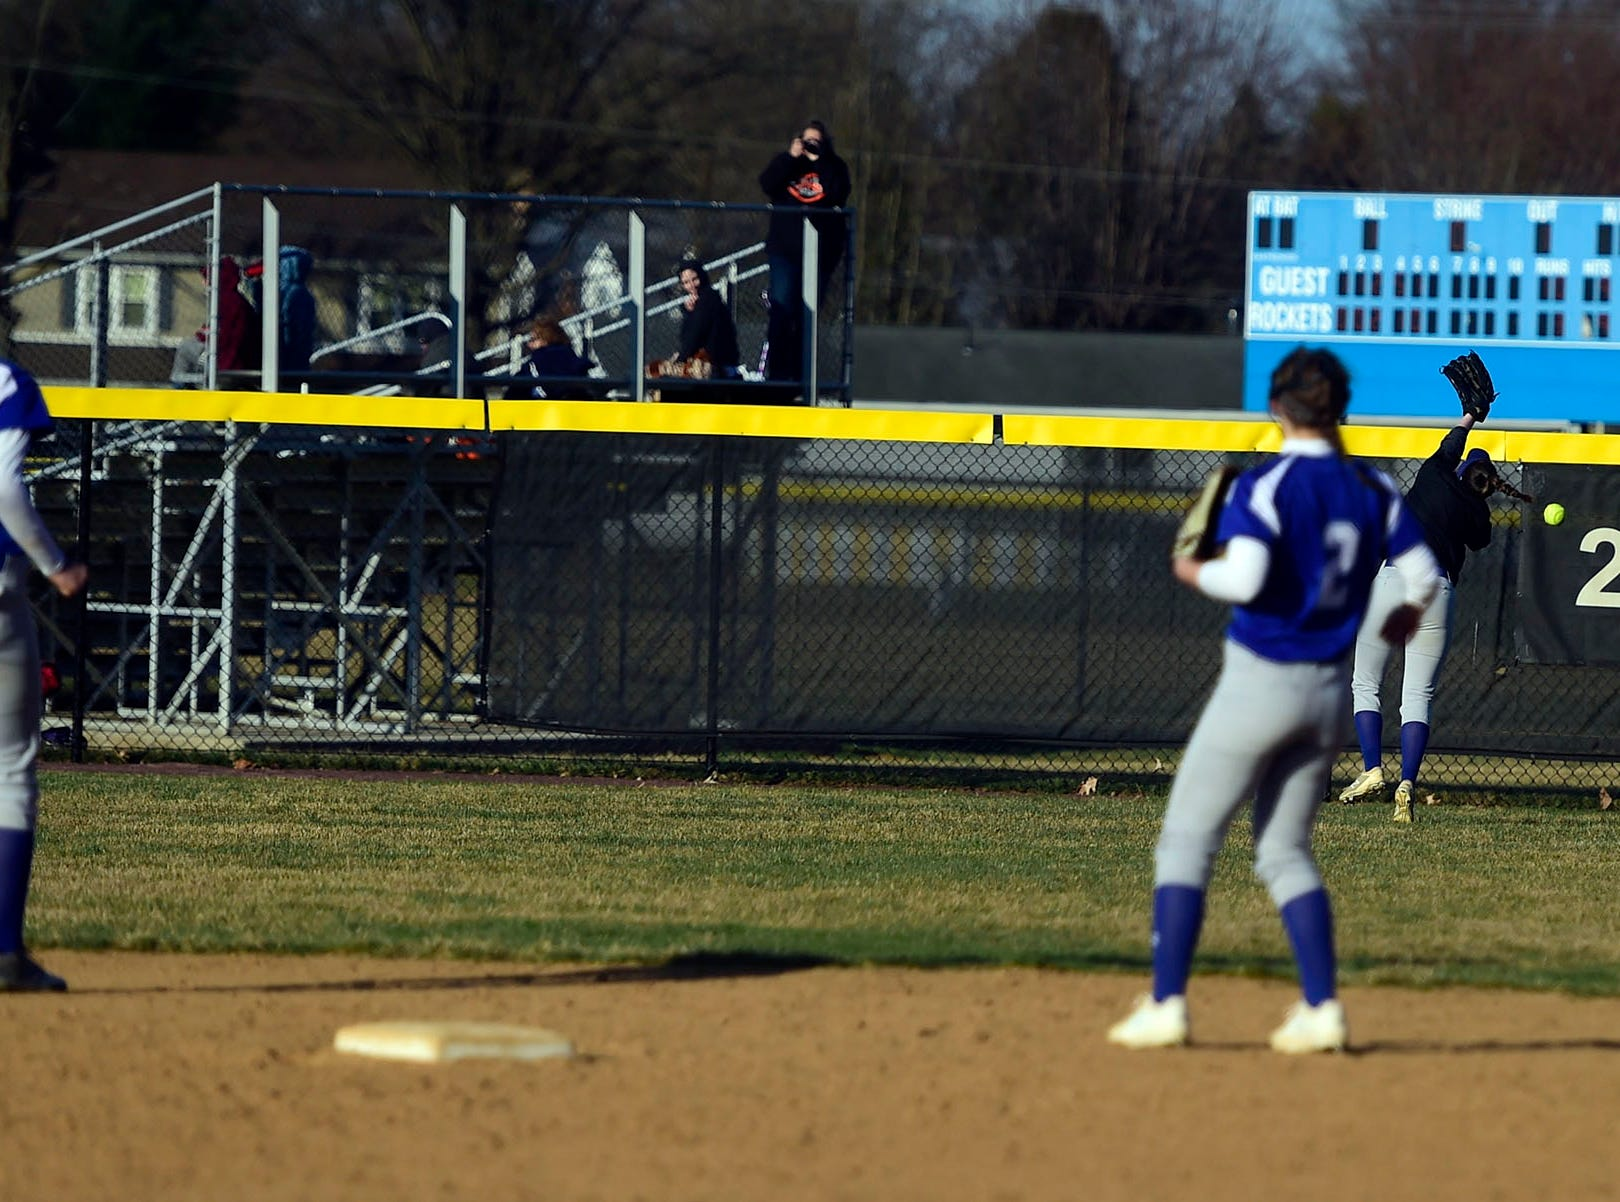 Spring Grove center fielder Bailey Rapson can't run down a hit to the center field fence Wednesday, April 3, 2019. Spring Grove defeated Northeastern, 19-14, in a game that featured 10 extra-base hits.